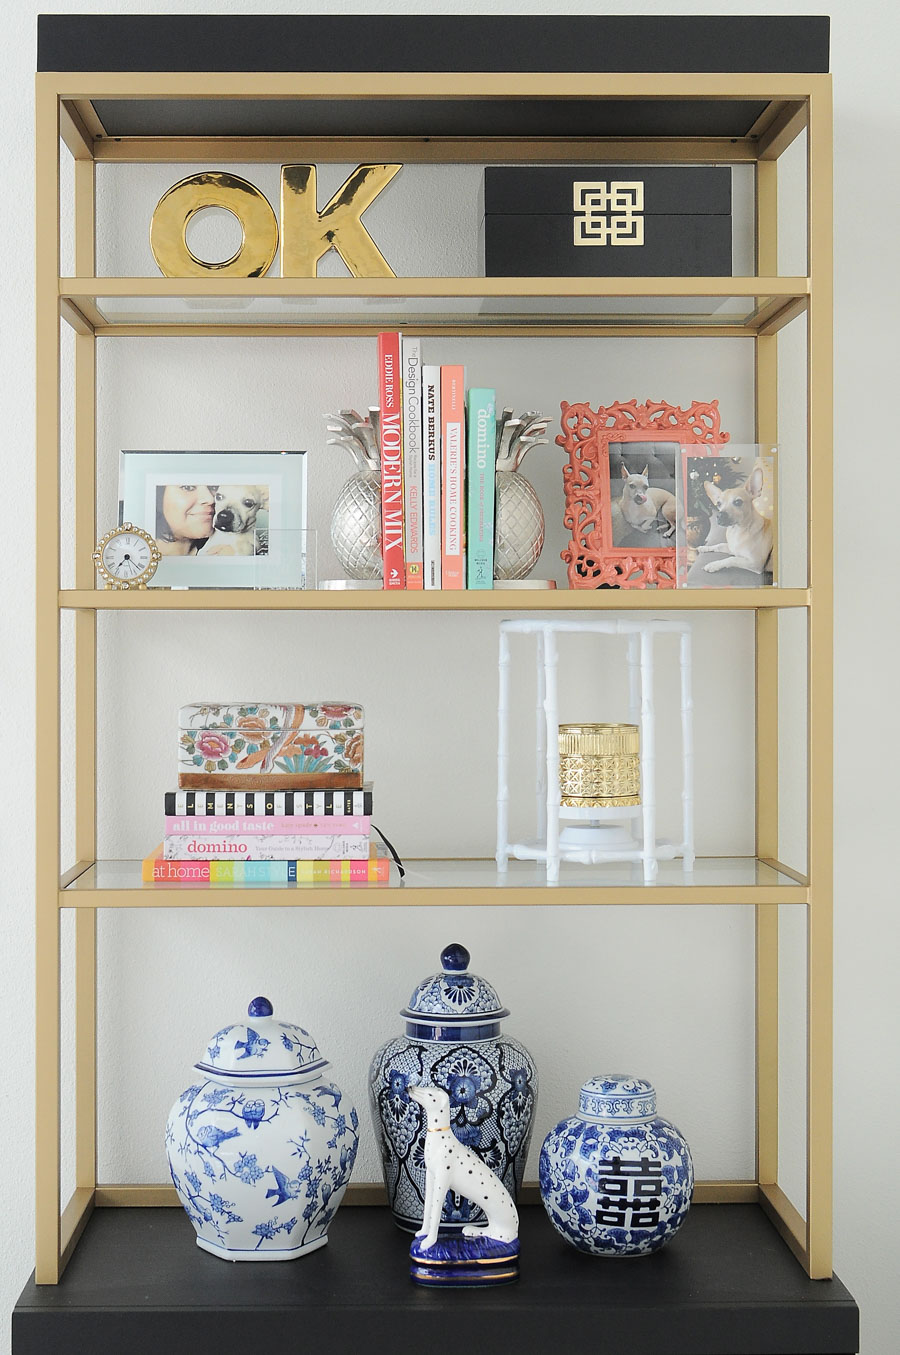 A perfectly styled bookcase or bookshelf is easy when you follow some simple design principles and tips.